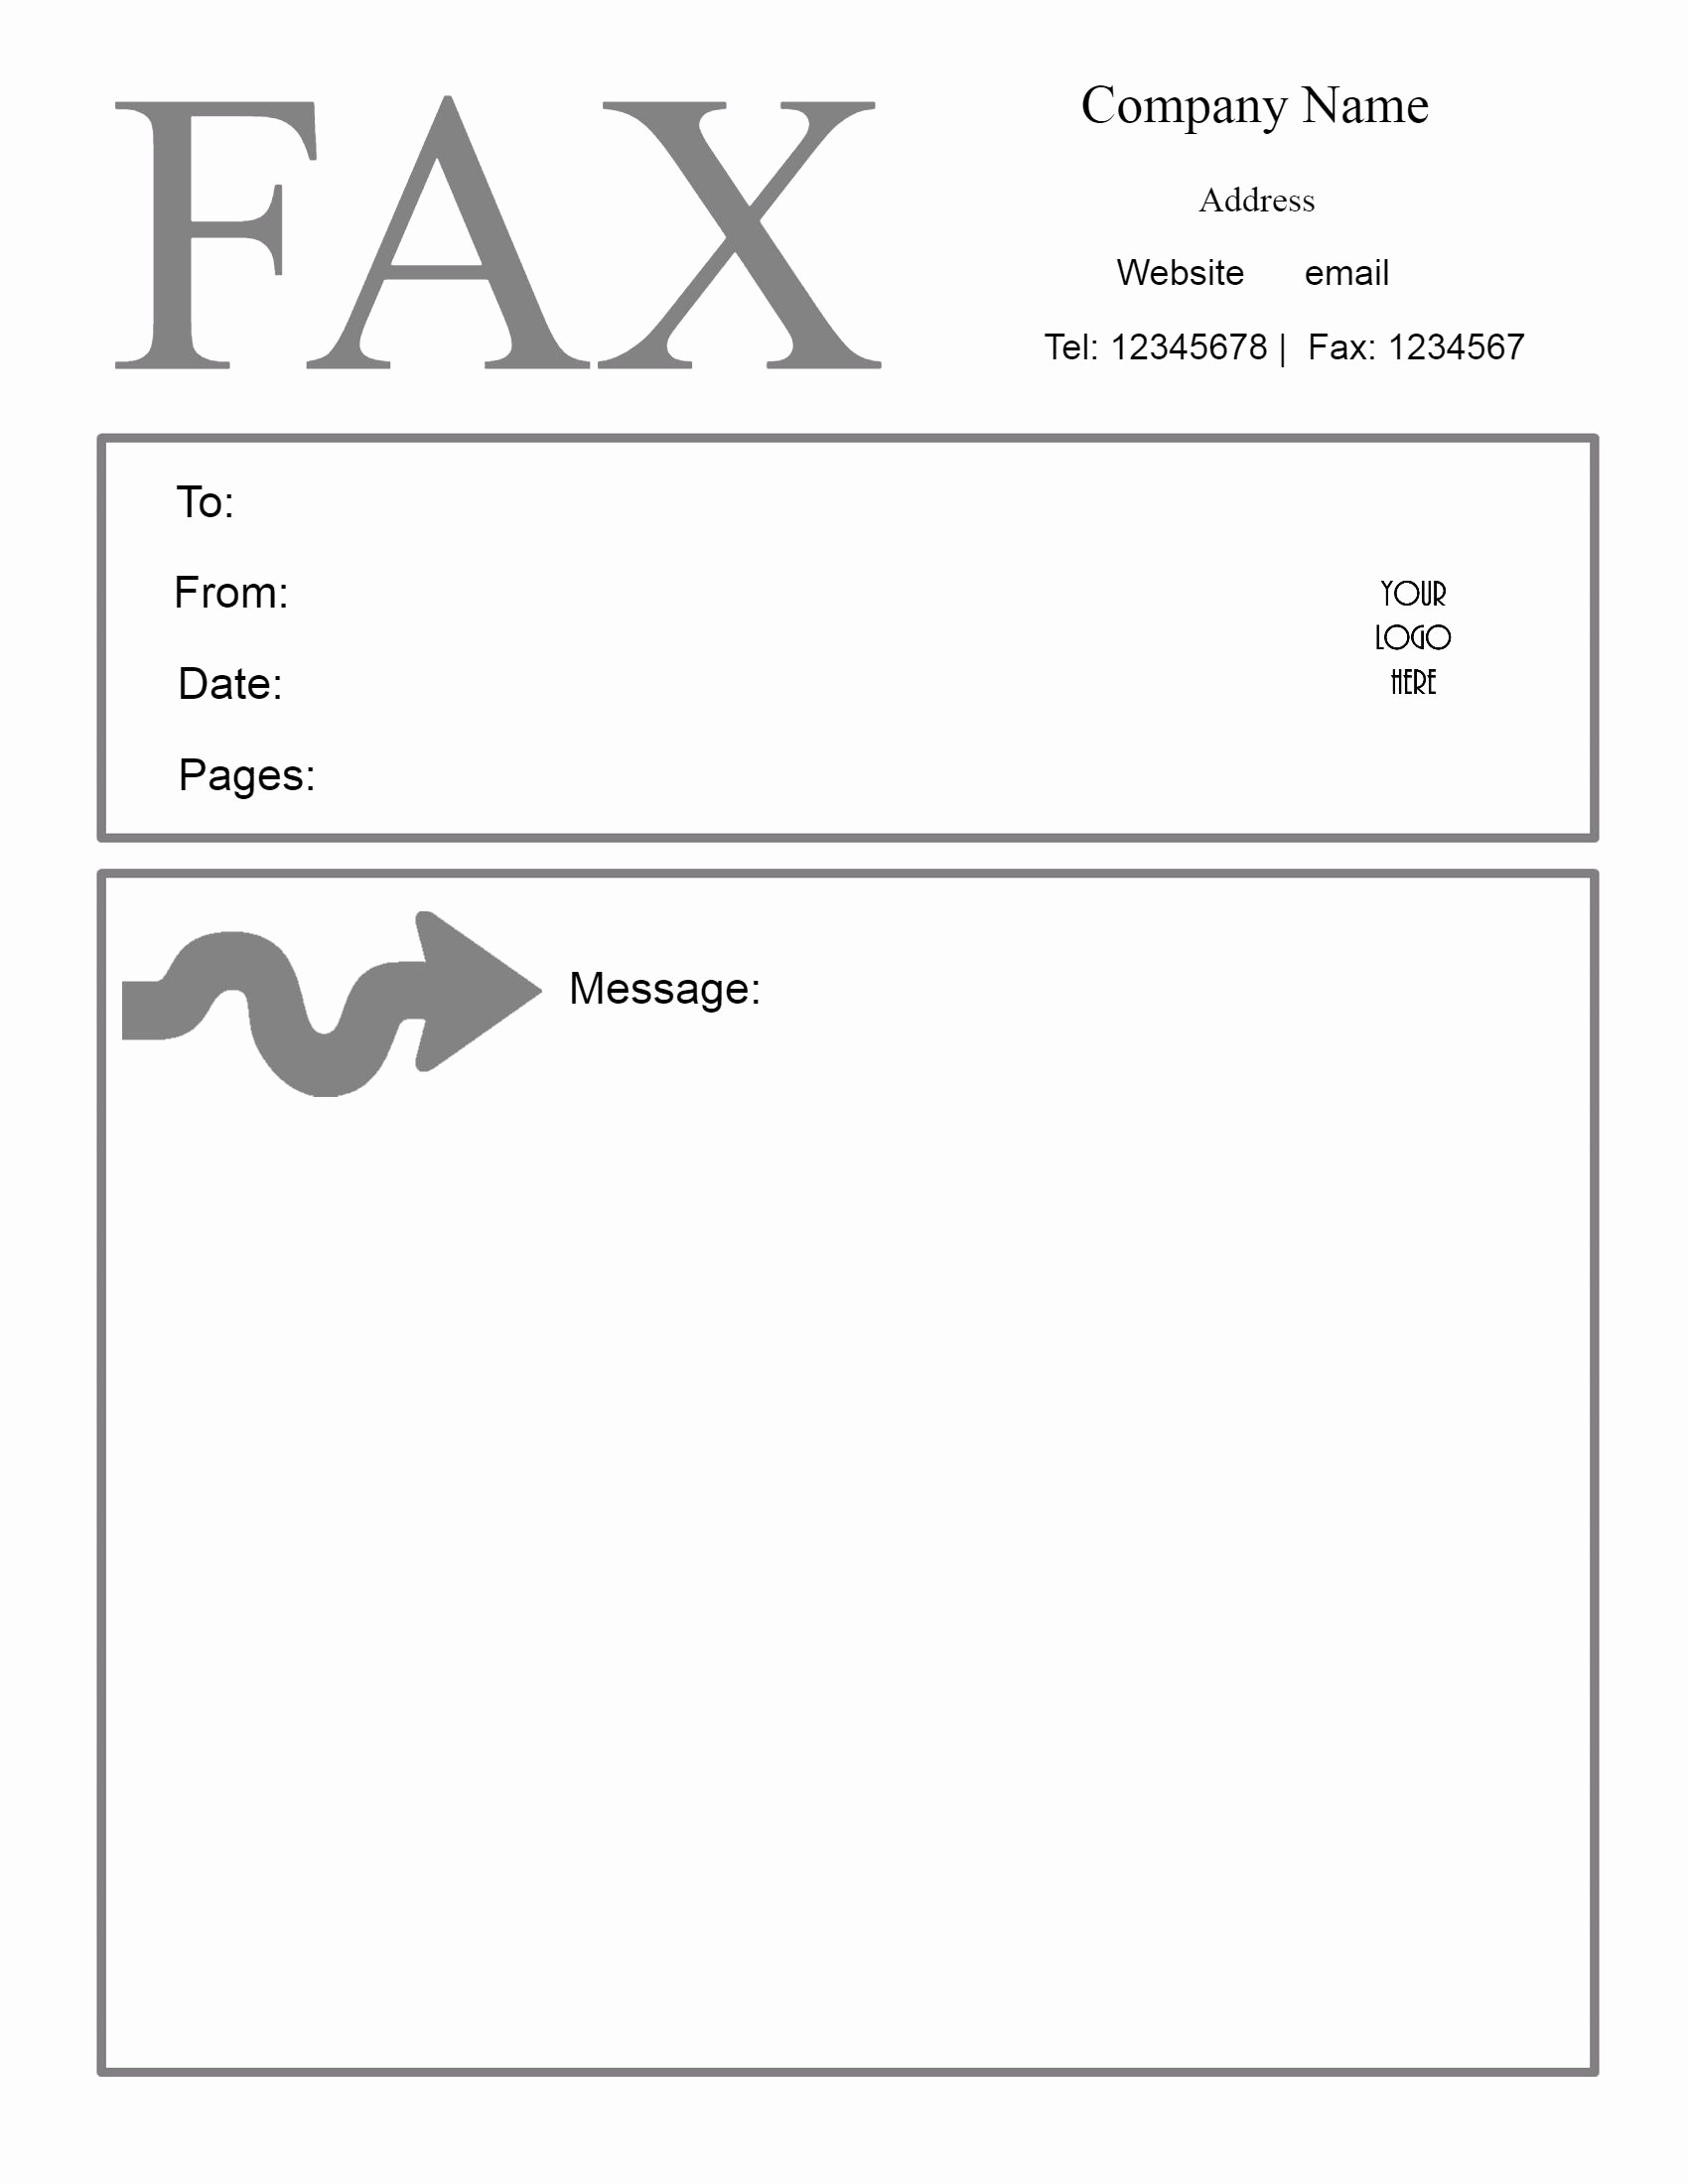 Free Fax Cover Sheets Template Inspirational Free Fax Cover Sheet Template